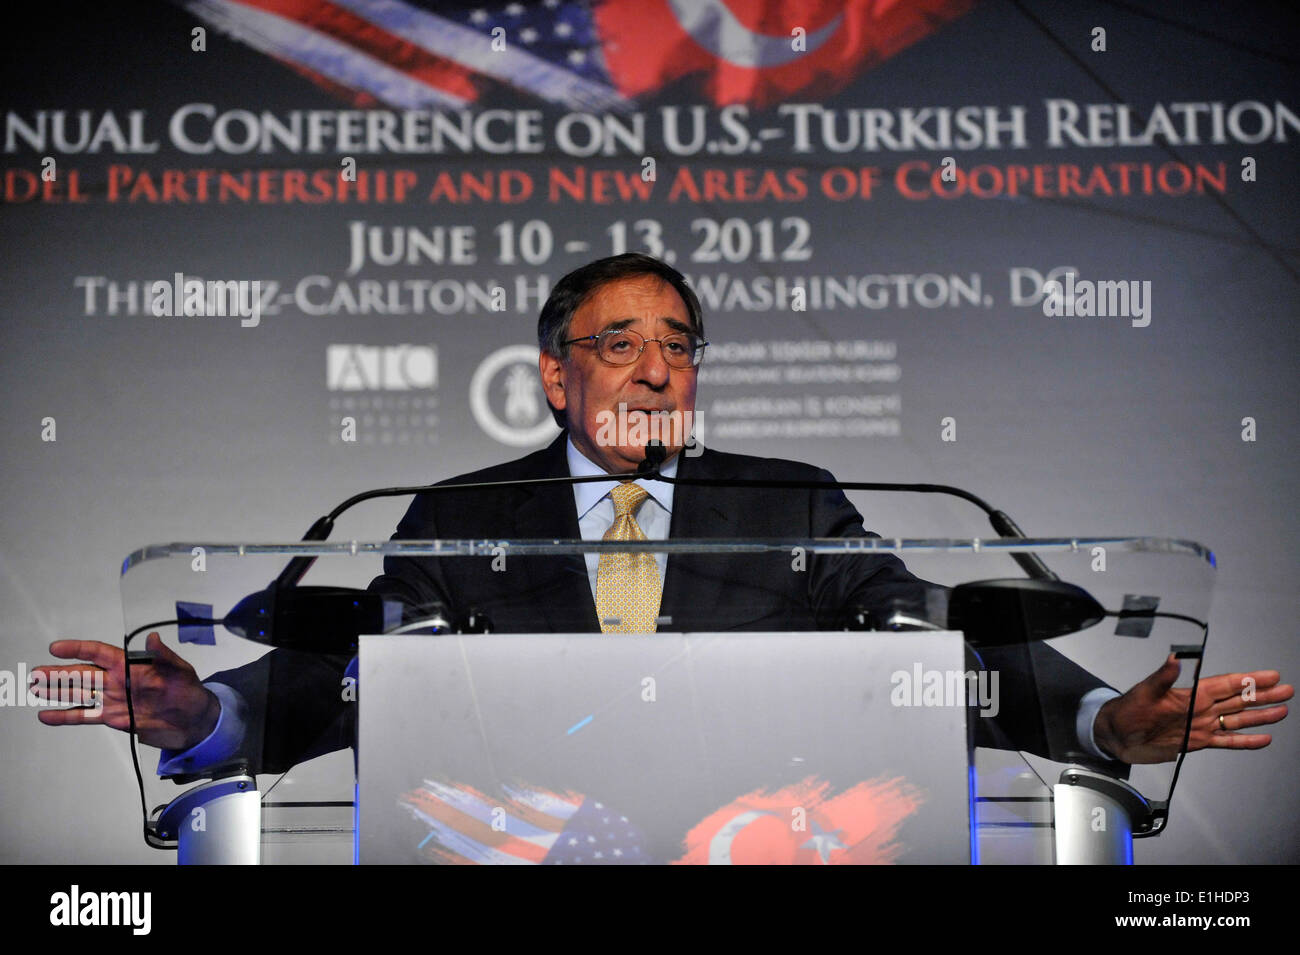 Secretary of Defense Leon E. Panetta gives the keynote address during the 31st Annual Conference on U.S.-Turkish Relations dinn - Stock Image